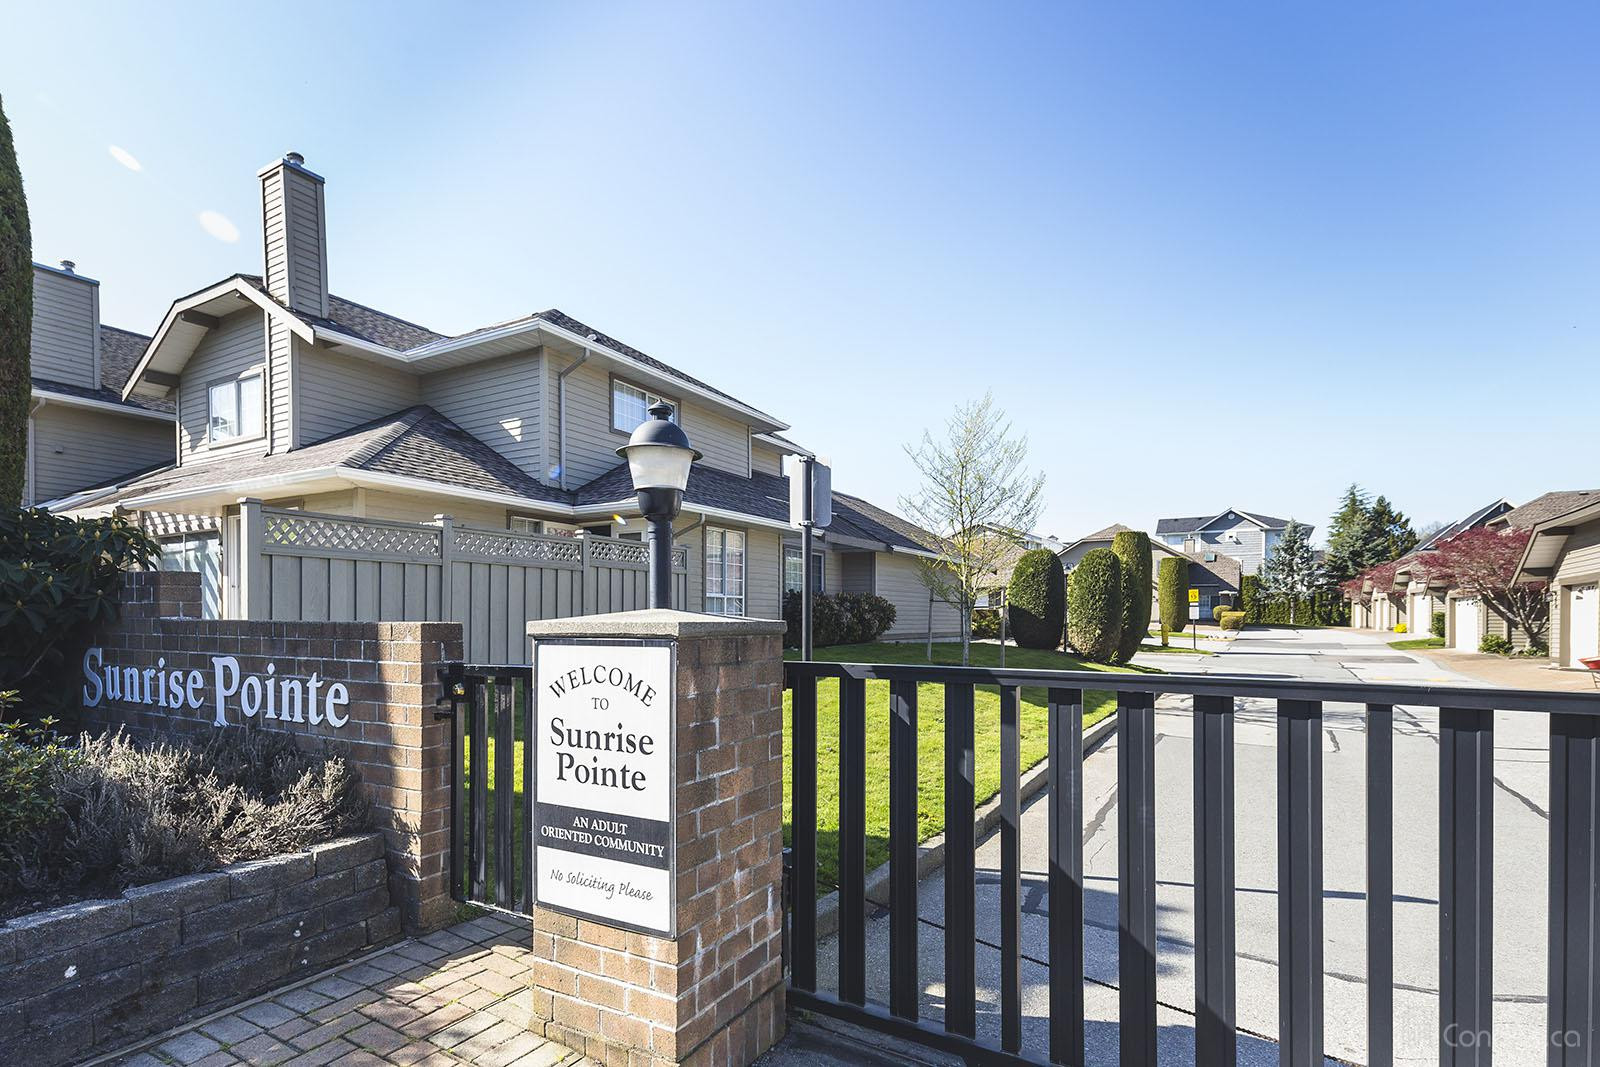 Sunrise Pointe at 16275 15 Ave, Surrey 1